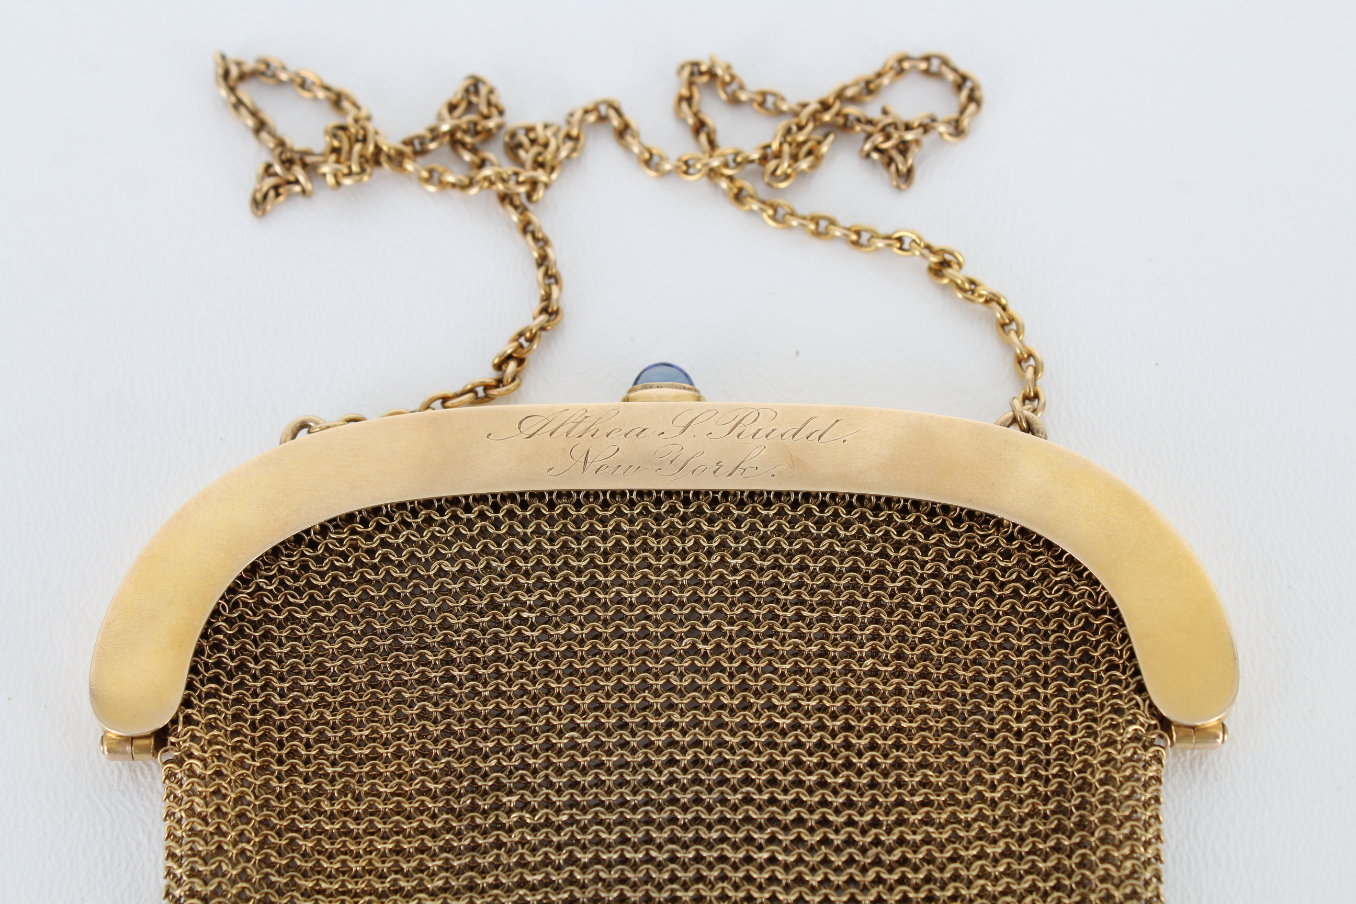 14K Gold Mesh Coin Purse w/ Diamond & Ruby Clasp - Image 5 of 6